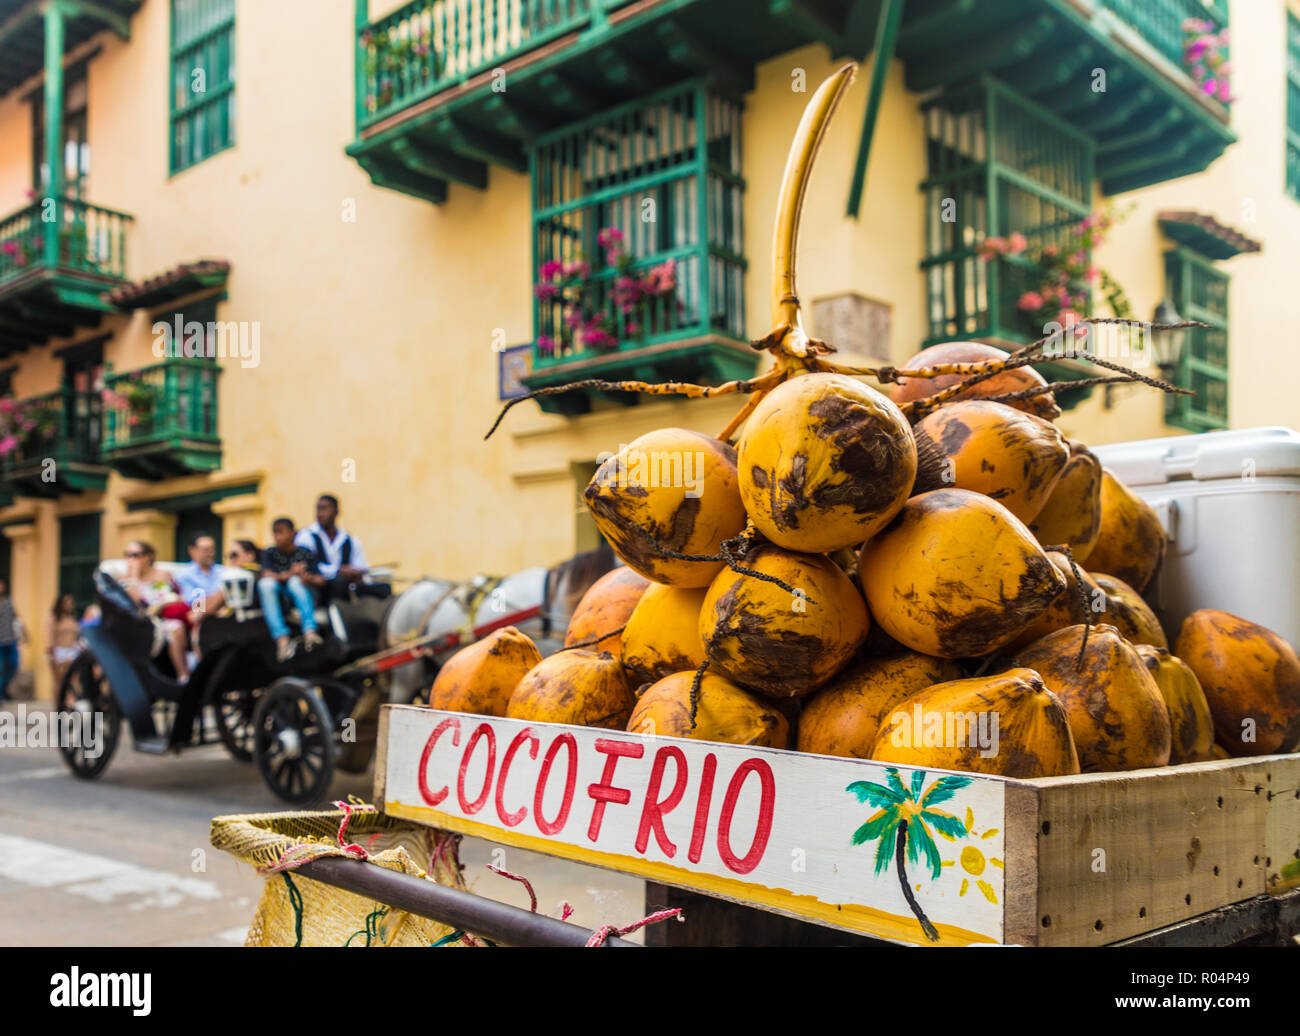 A Street Stall Selling Coconuts In The Old Town Cartagena